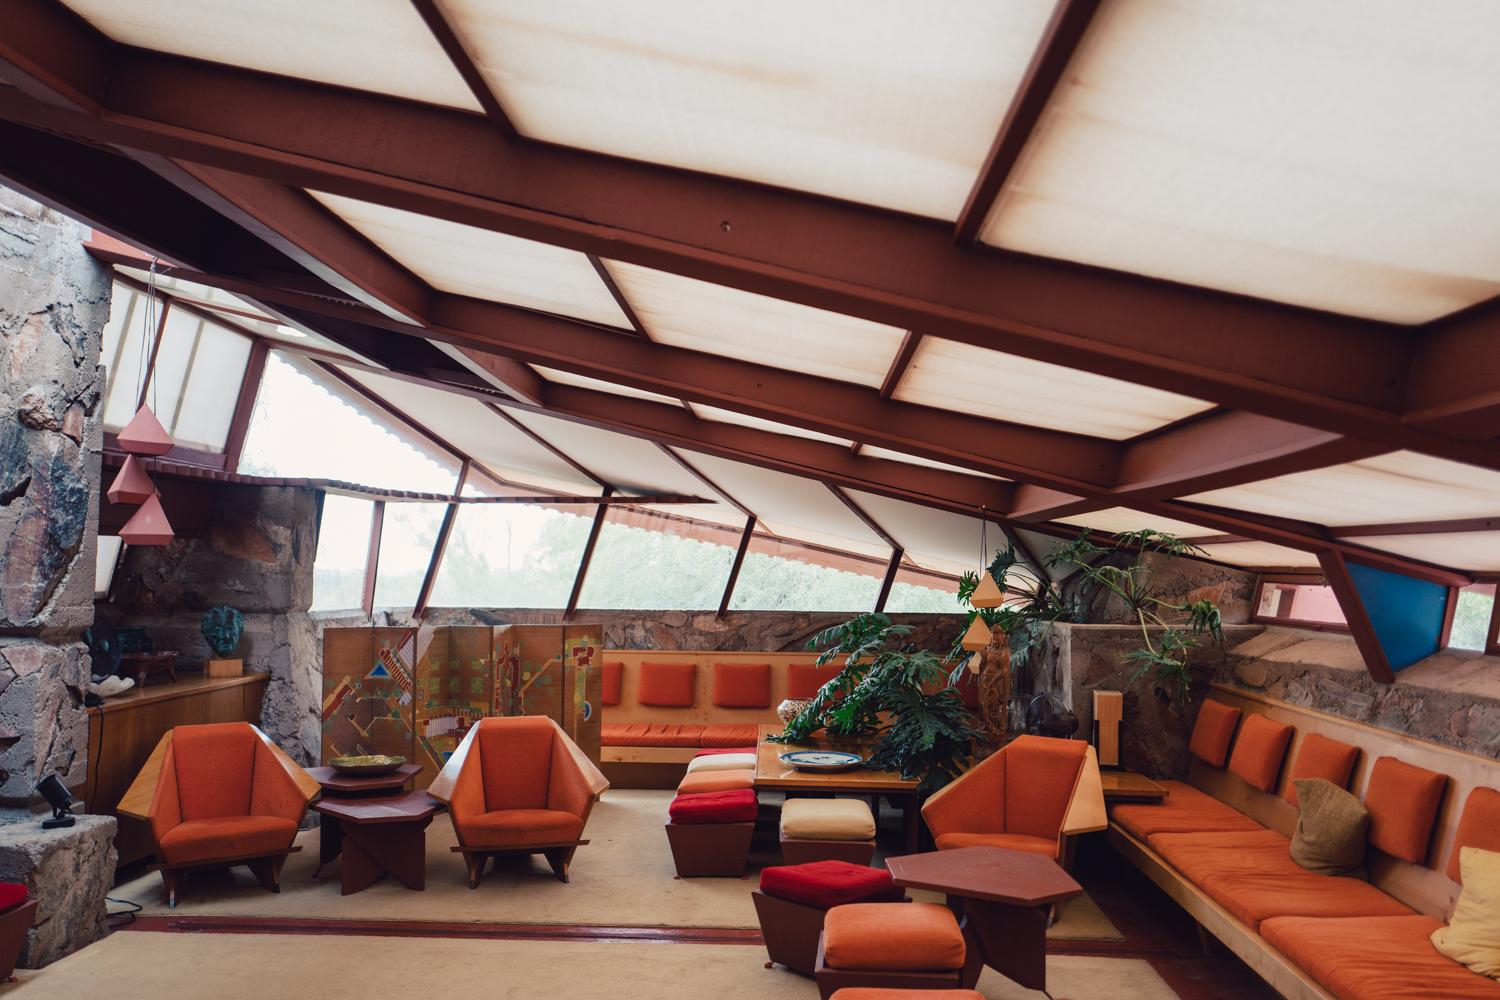 Lovely The Private Living Room At Taliesin West, Frank Lloyd Wright's inside New The Living Room Scottsdale